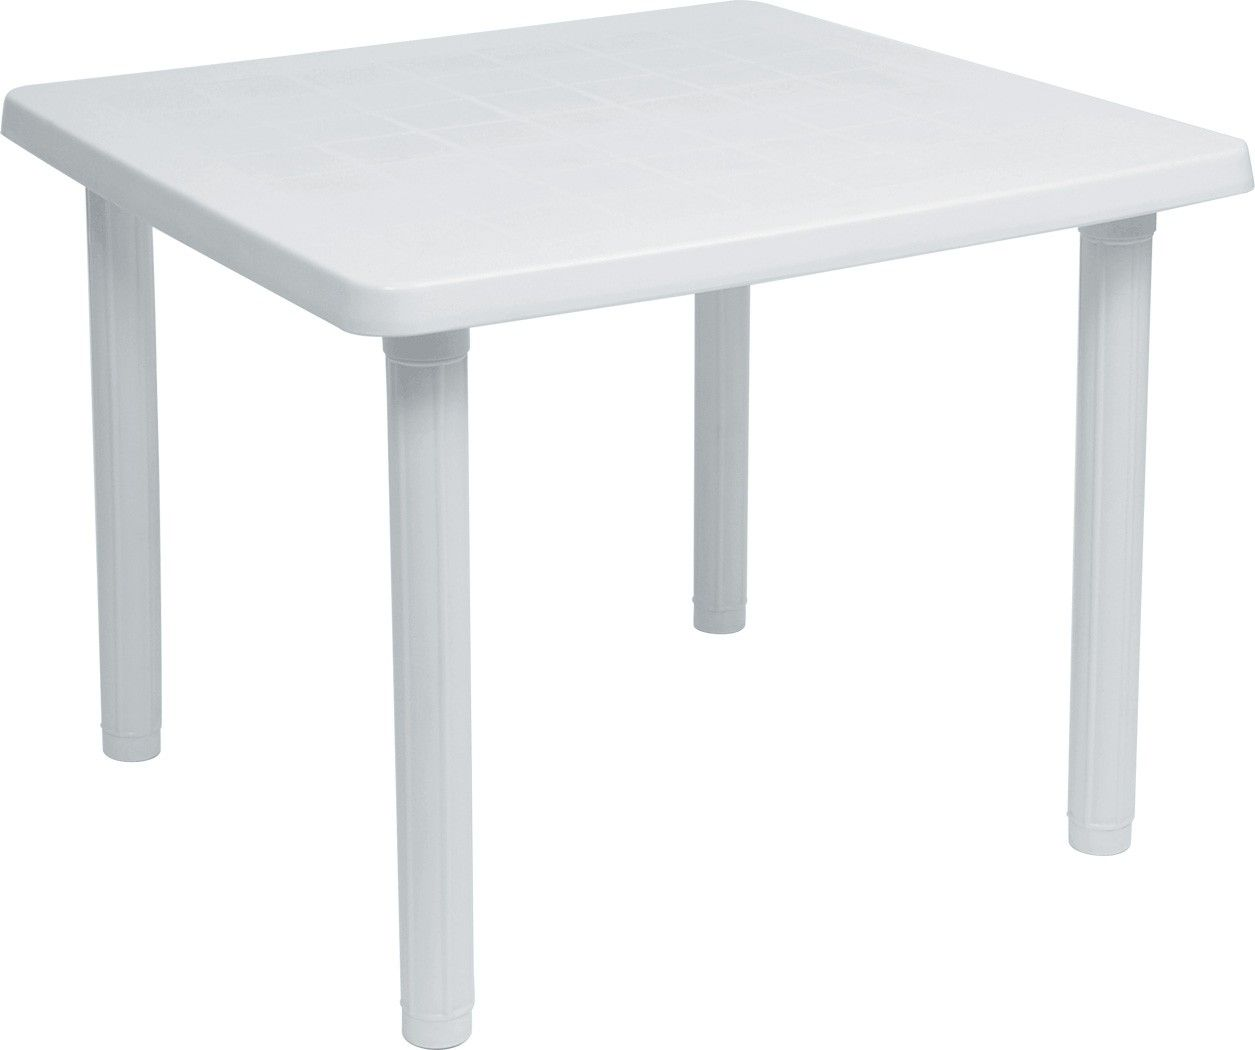 1201 Square Table Size 910 Mm X 910 Mm X 730 Mm 601 Table Sizes